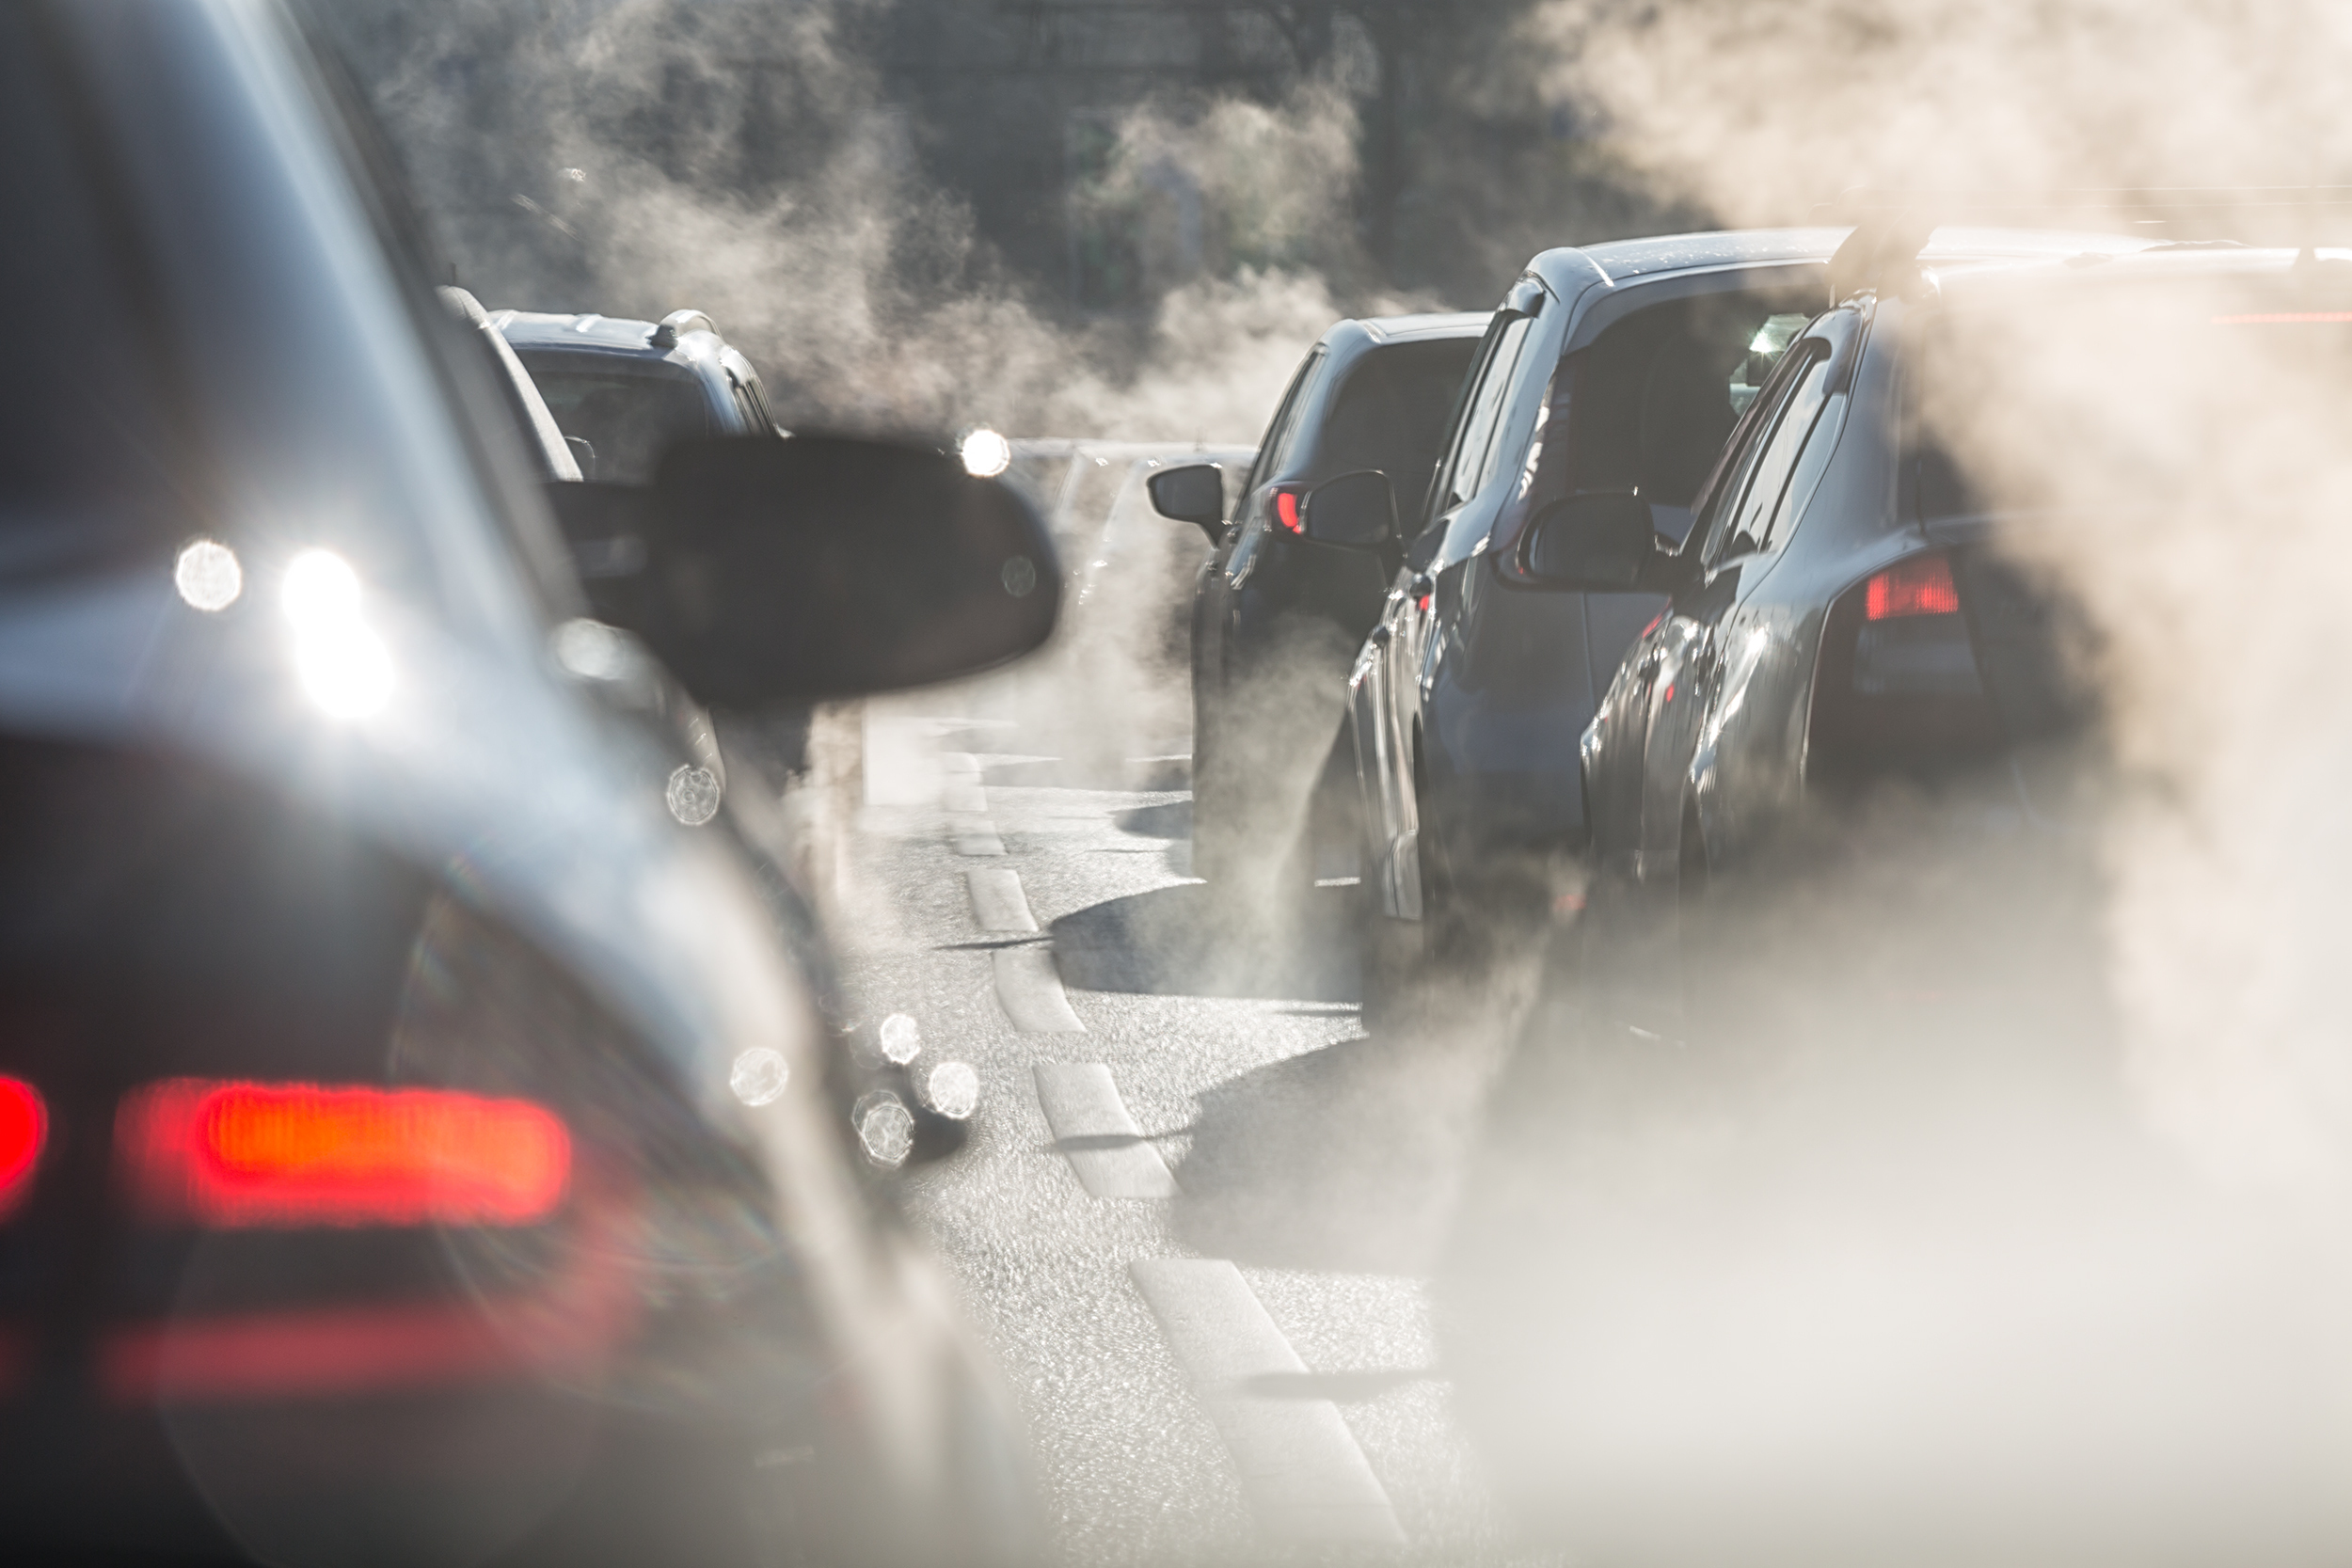 Co2 Emissions From Cars On The Rise Again In The Uk Earth Com